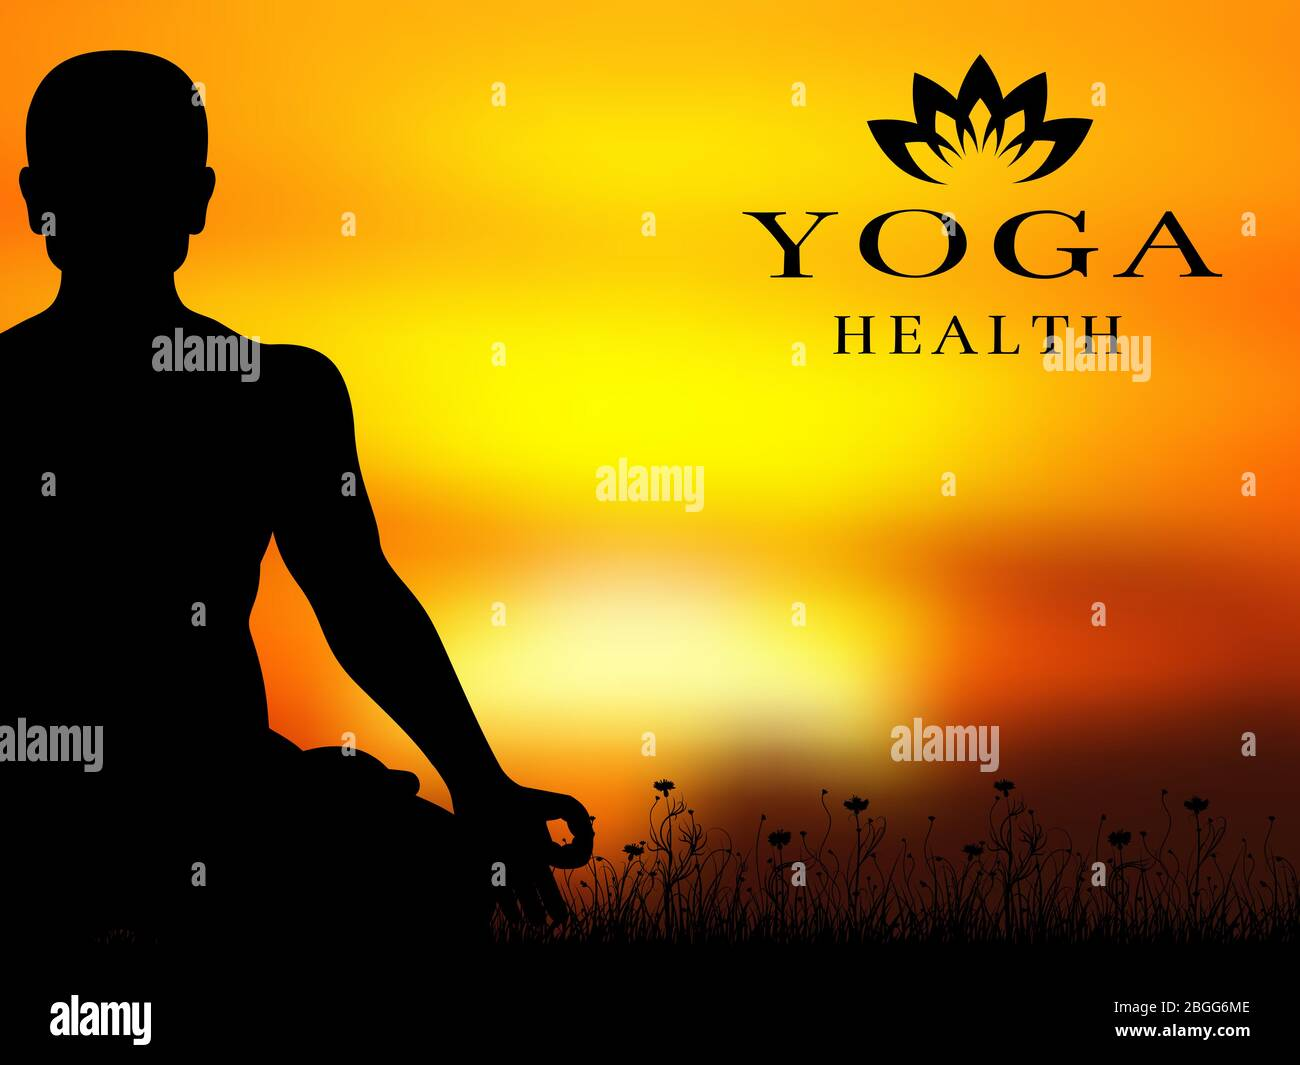 Yoga Meditation Silhouette Vector Background Banner And Poster Health Illustration Stock Vector Image Art Alamy